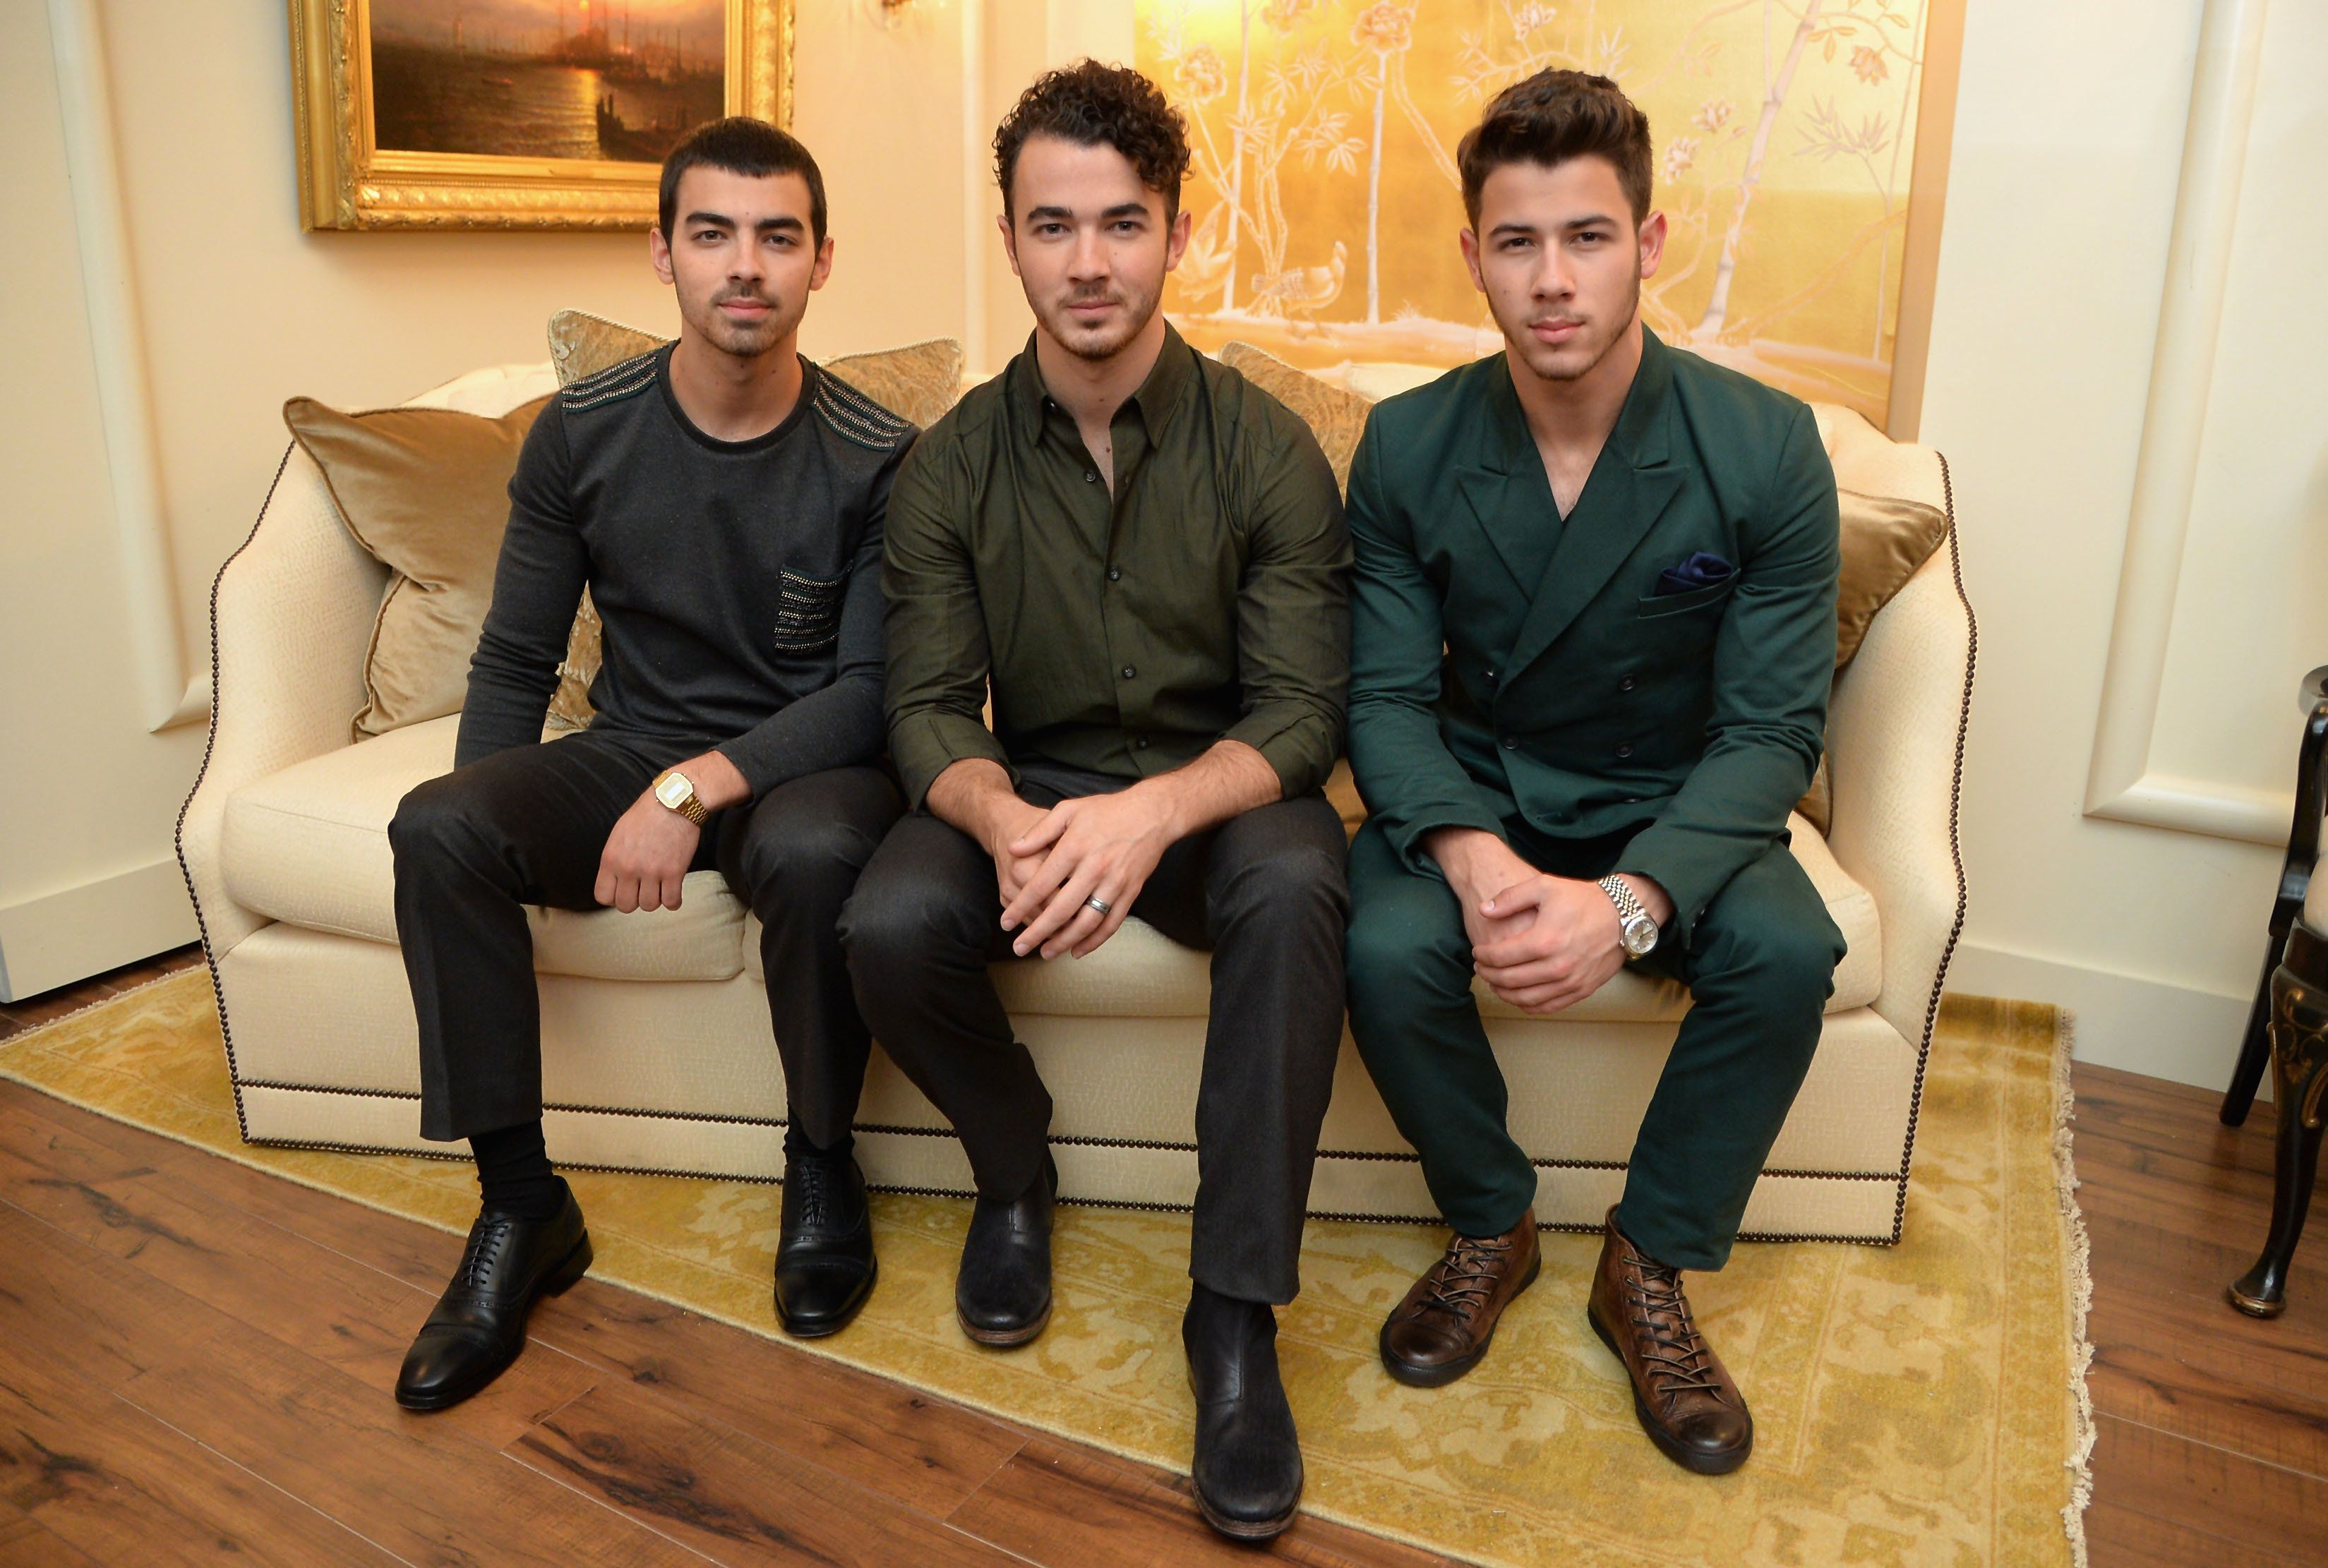 Joe, Kevin and Nick Jonas attend Mercedes-Benz Fashion Week in 2013.